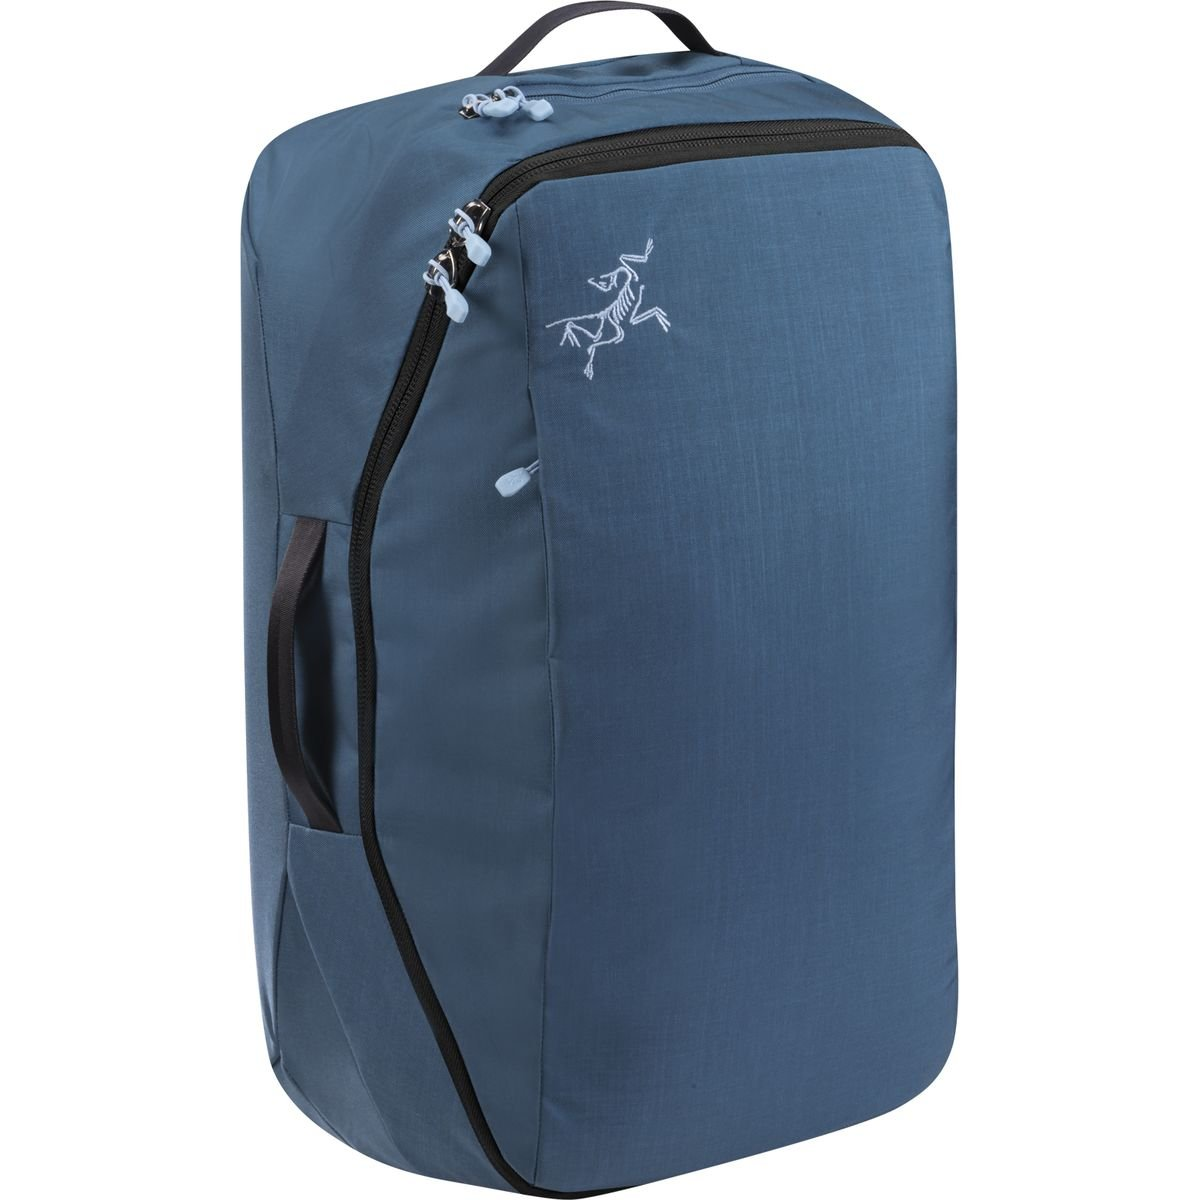 Arc'Teryx Men's Covert Case Carry On Backpack, Legion Blue, One Size